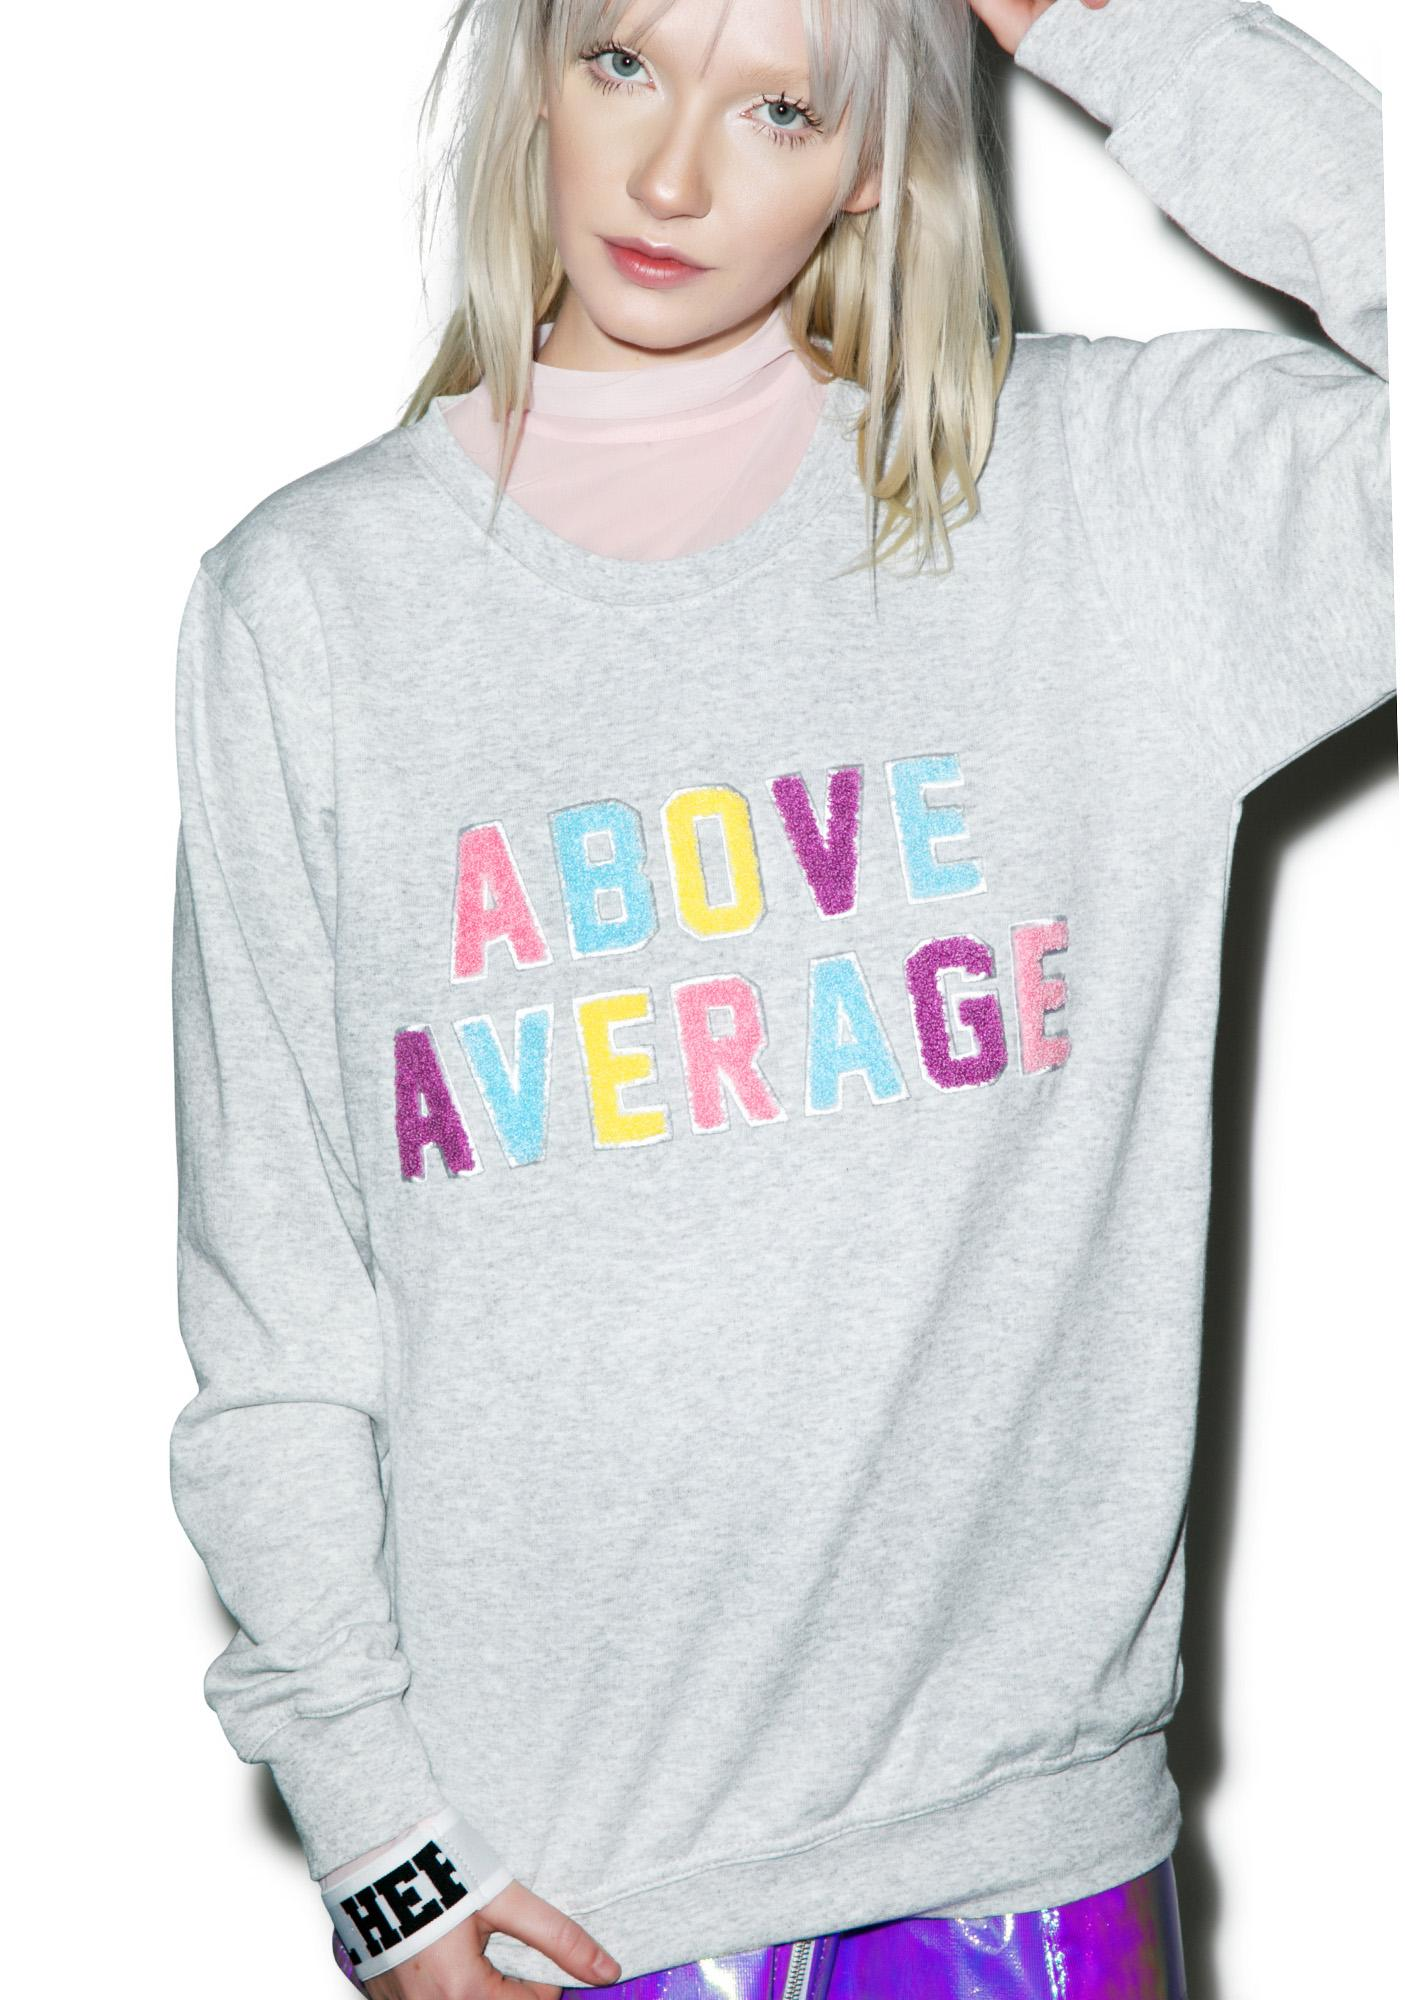 Local Heroes Above Average Sweatshirt